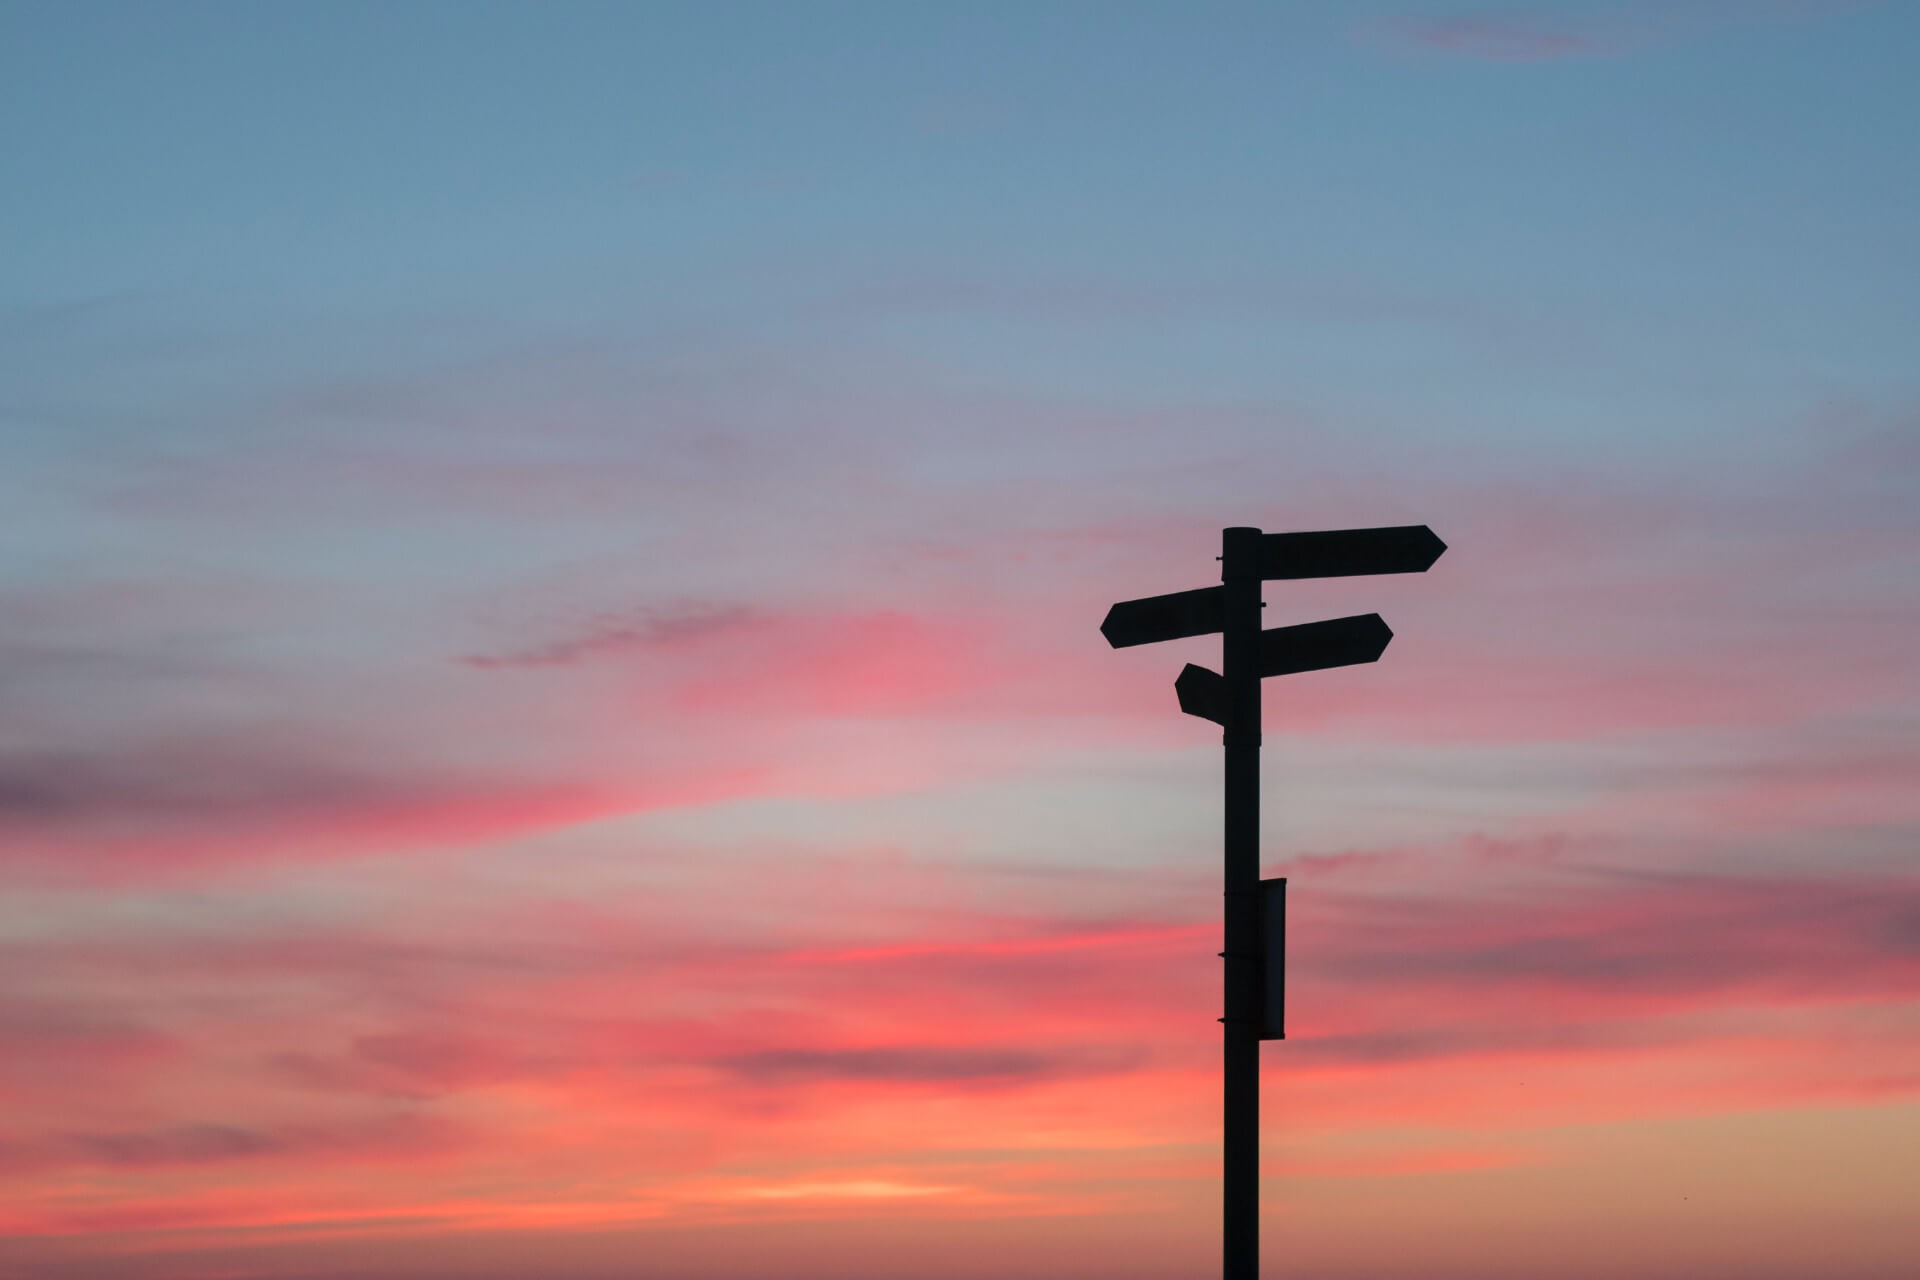 A signpost forms a silhouette against the backdrop of a sunset.